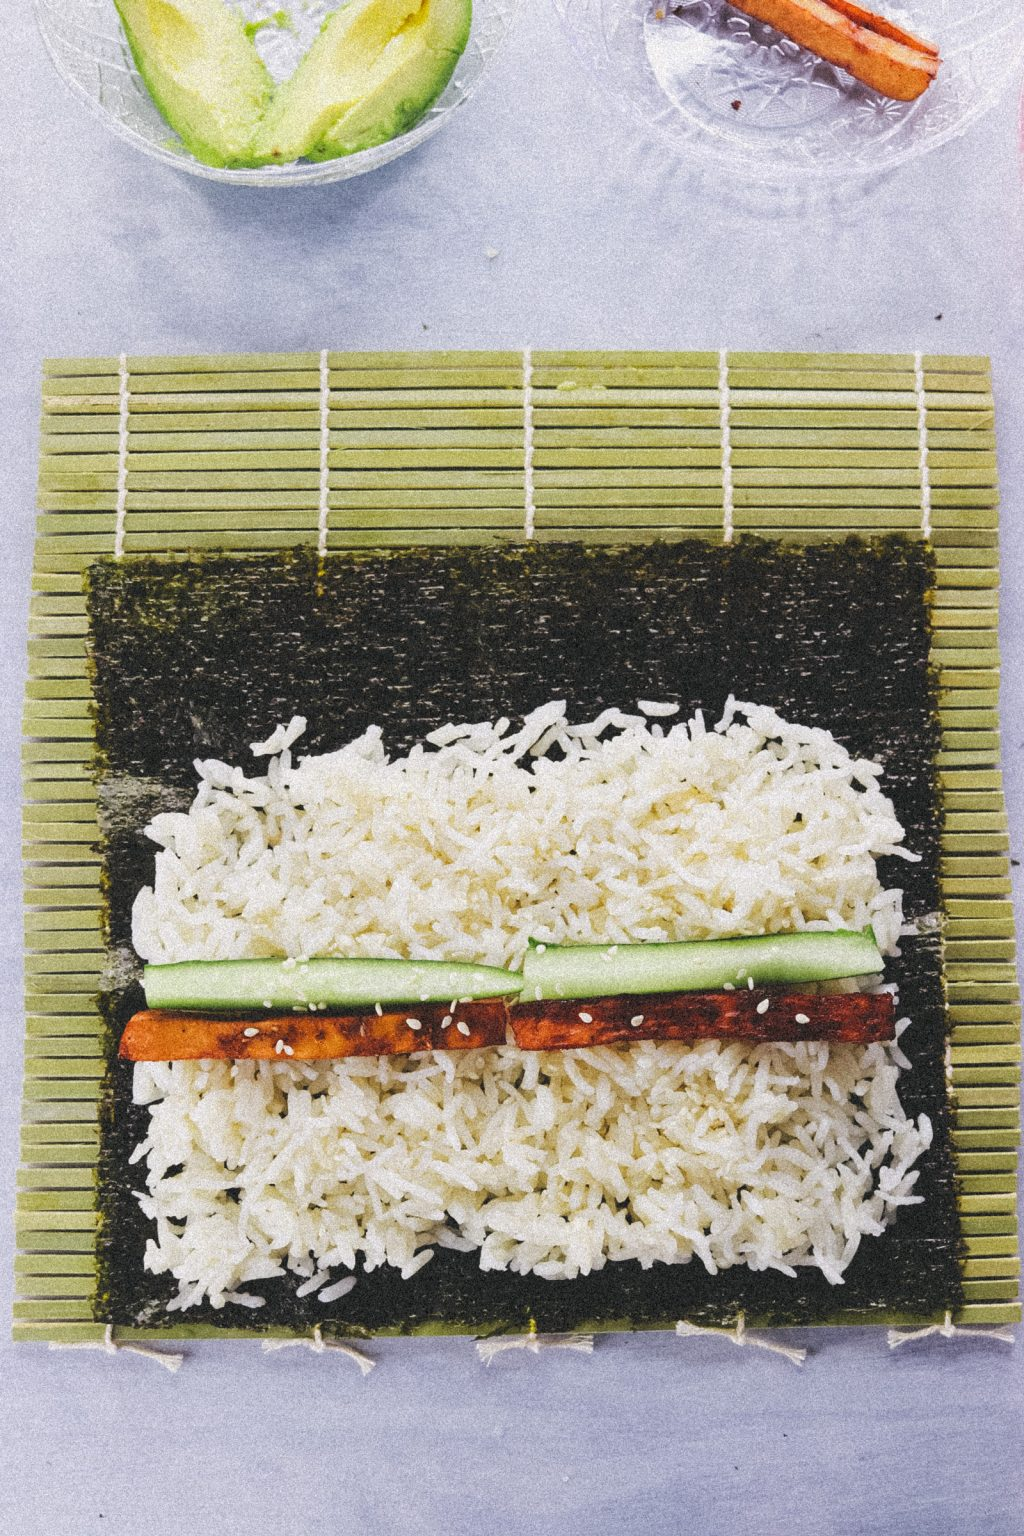 Vegan Tofu Sushi Recipe  4001 1024x1536 - Vegan Sushi Recipe - Super Quick, Easy And Delicious